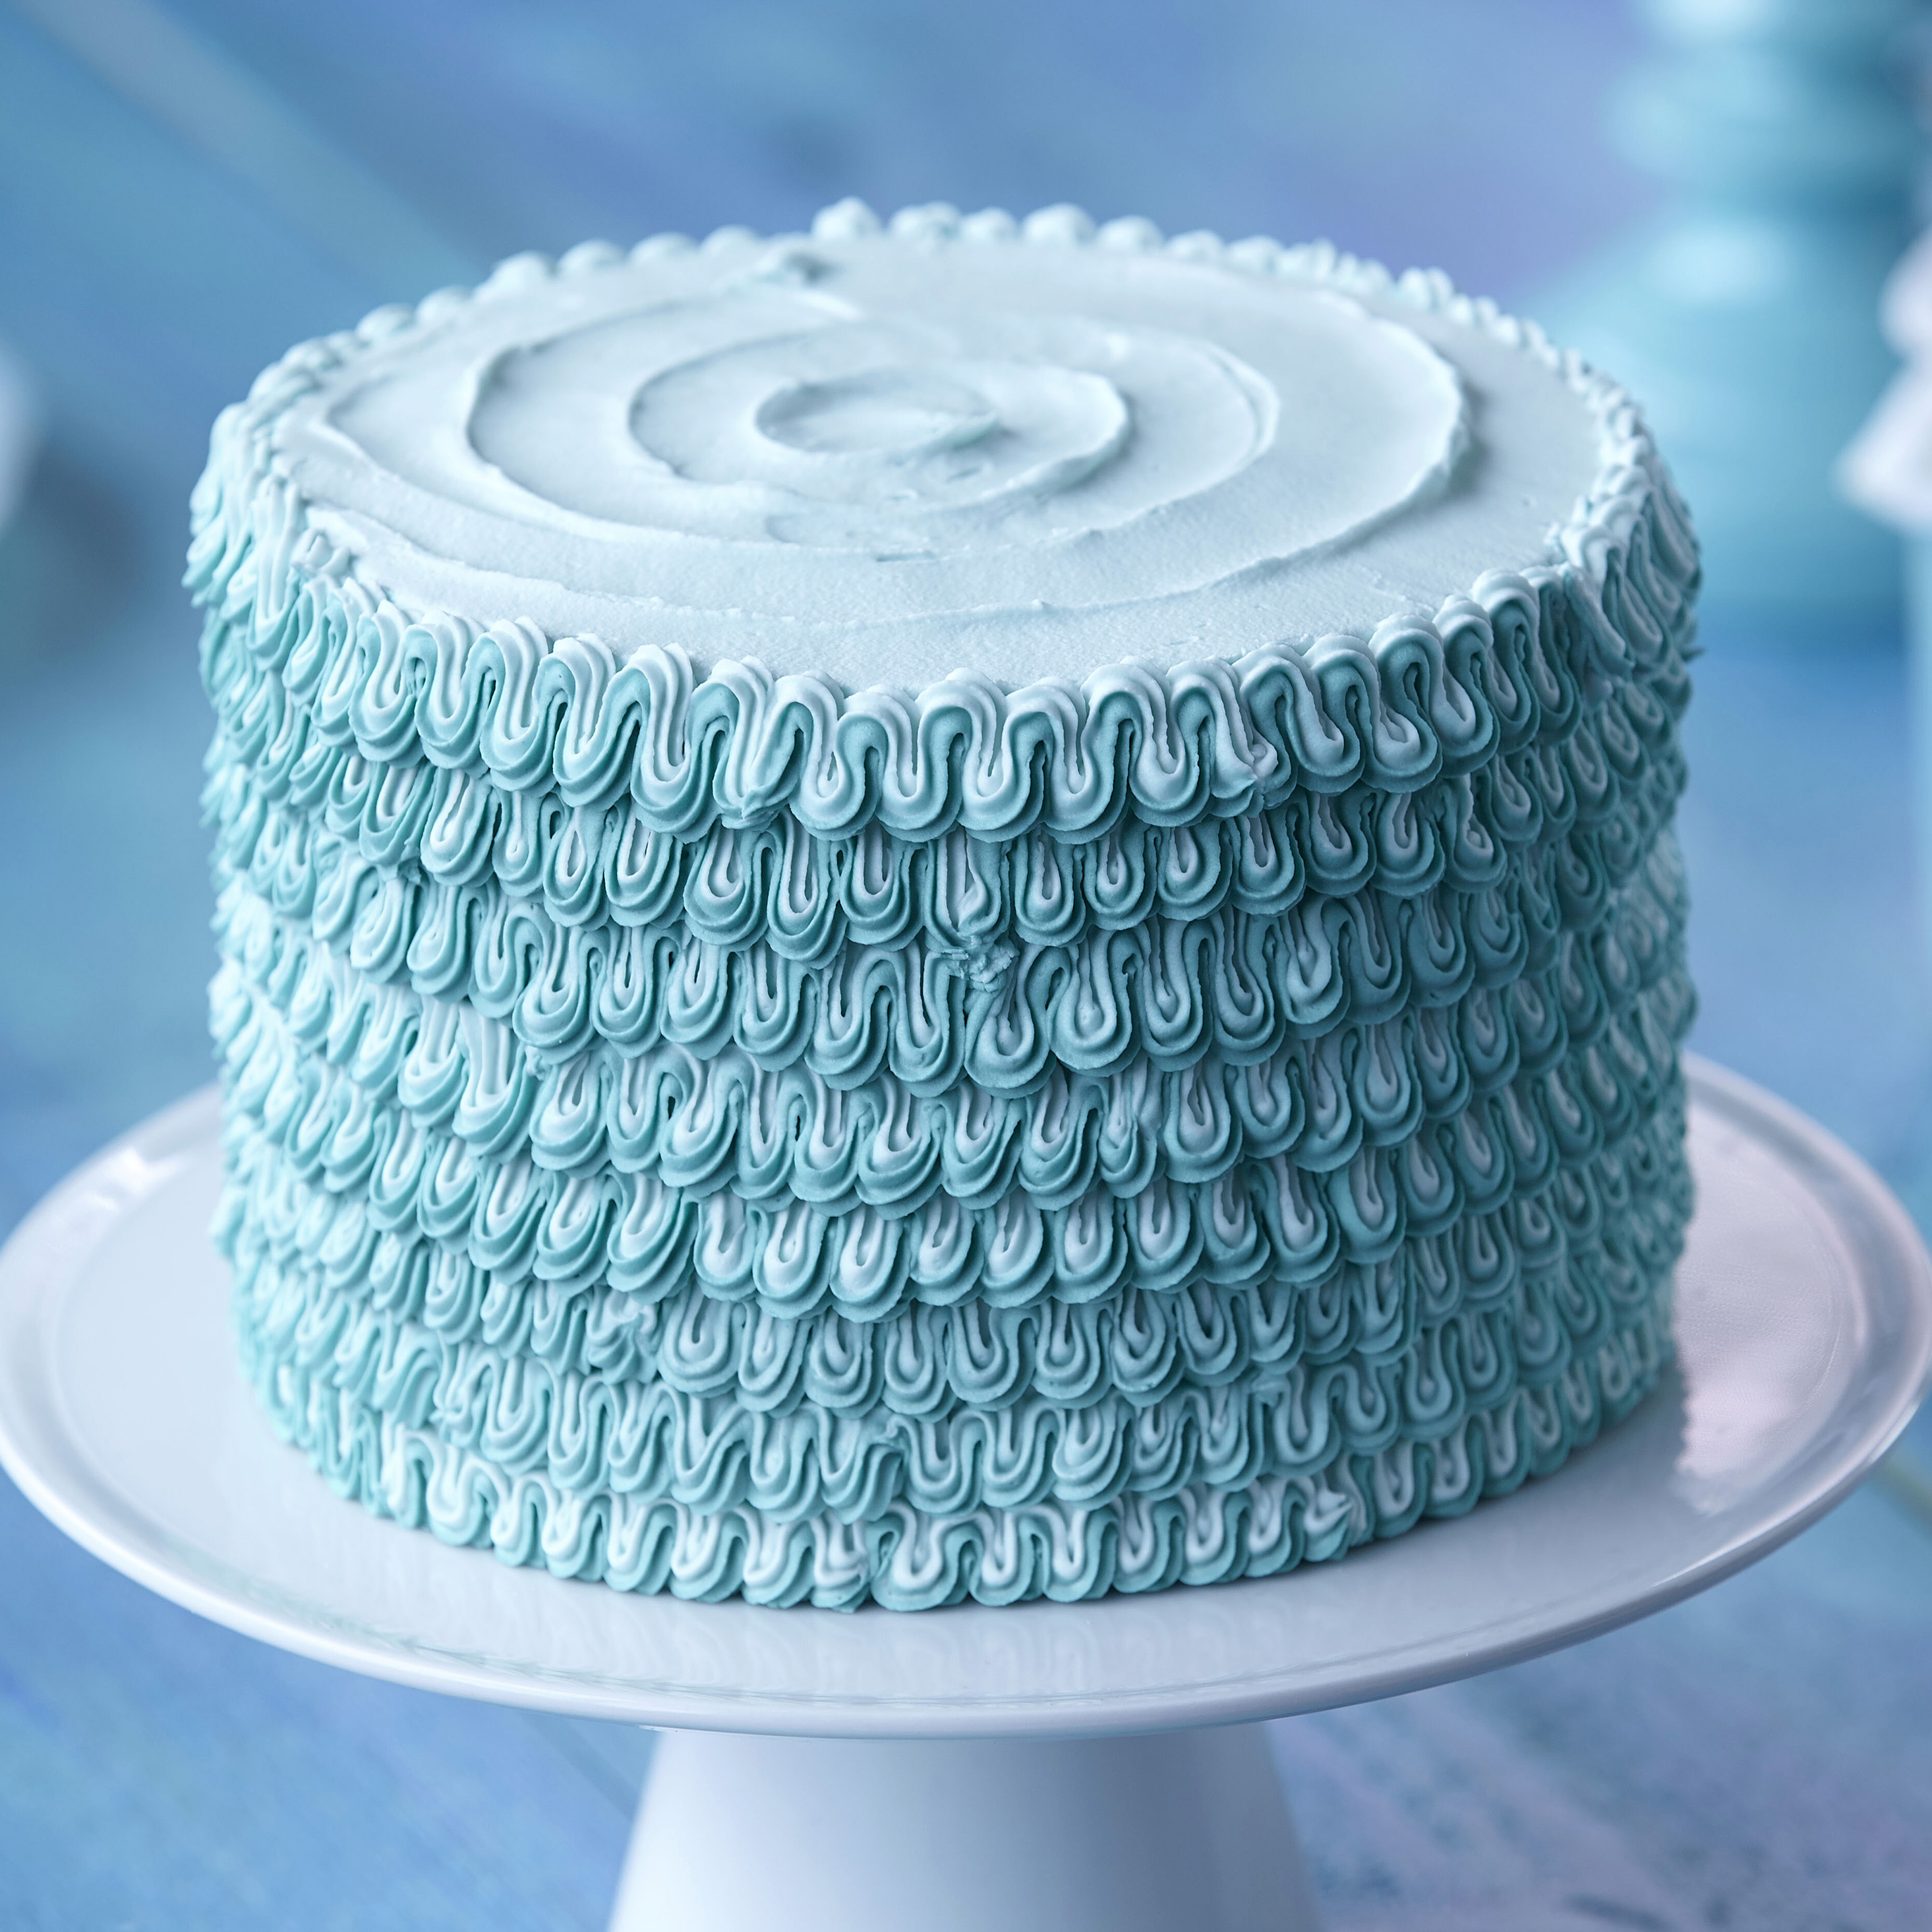 Wilton Cake Class Buttercream Recipe : Learn to decorate a cake with a Wilton Method Class?